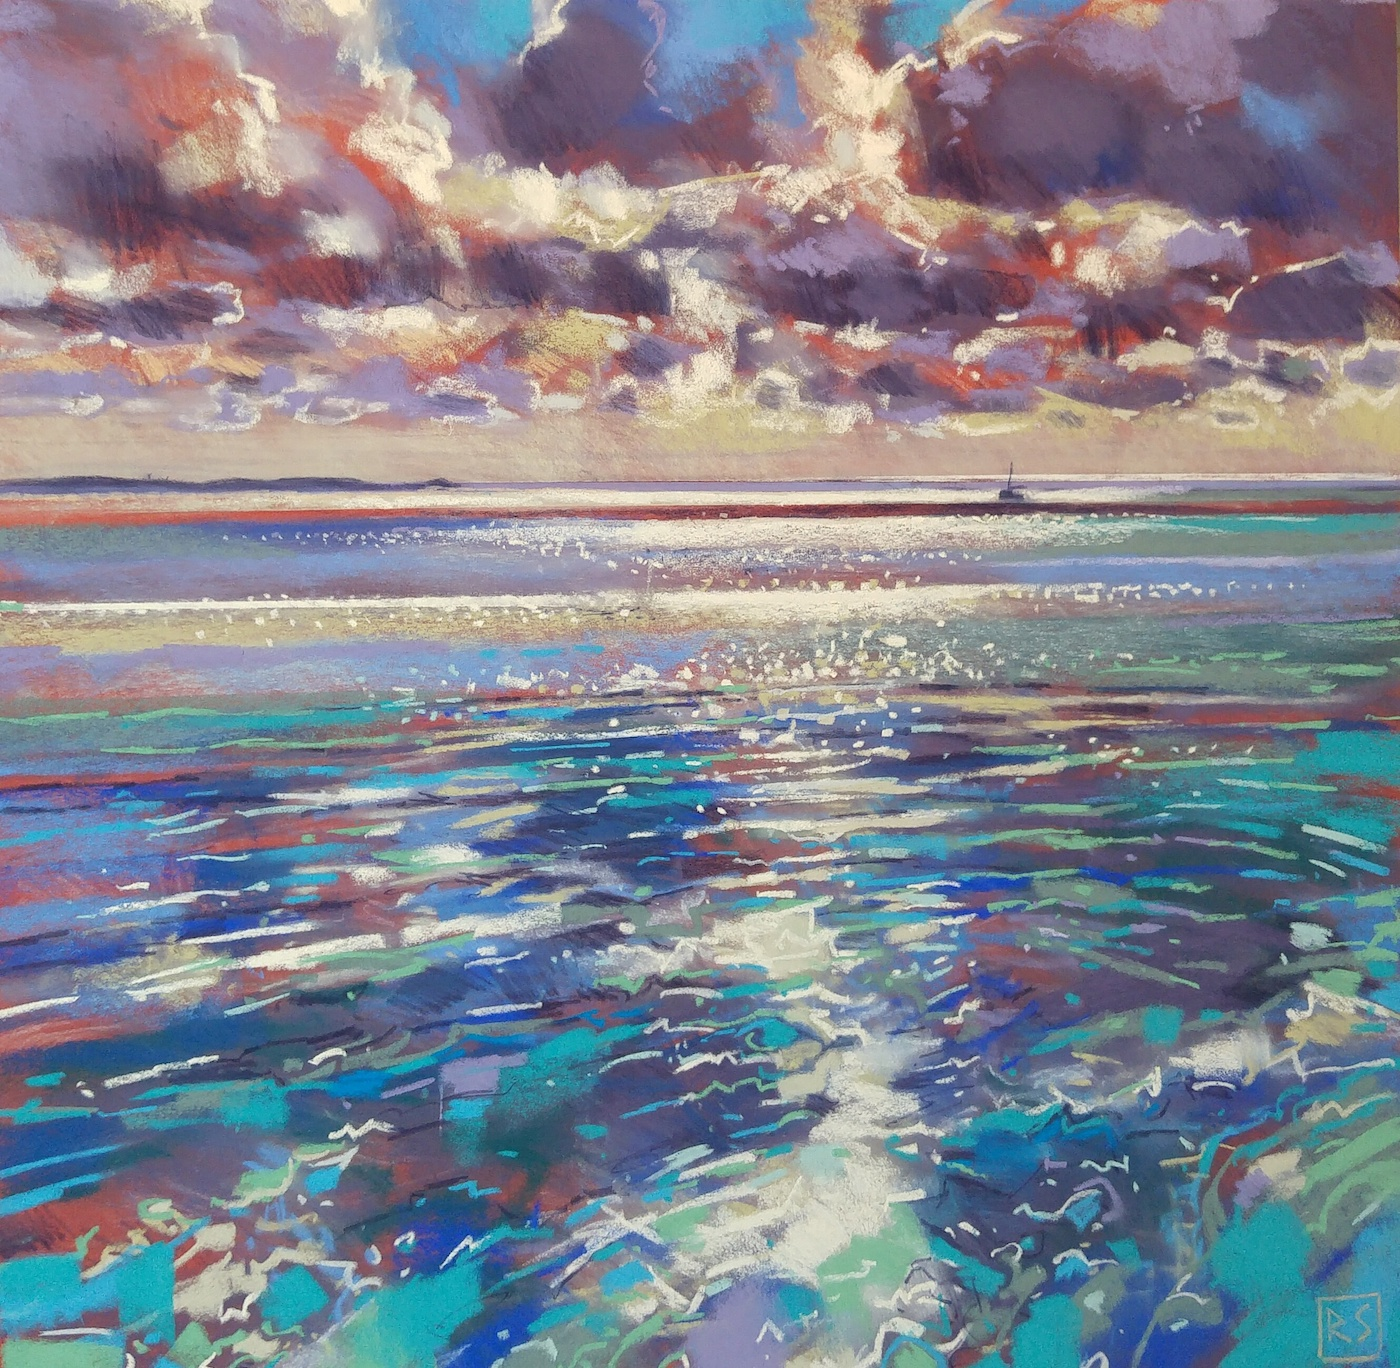 "Richard Suckling, ""Morning Shimmer Mounts Bay,"" pastel on Sennelier LaCarte, 19 ¾ x 19 ¾ in. My usual studio style of pastel painting, primarily Cornish coastal scenes with a liking for a bit of sparkle on the water."